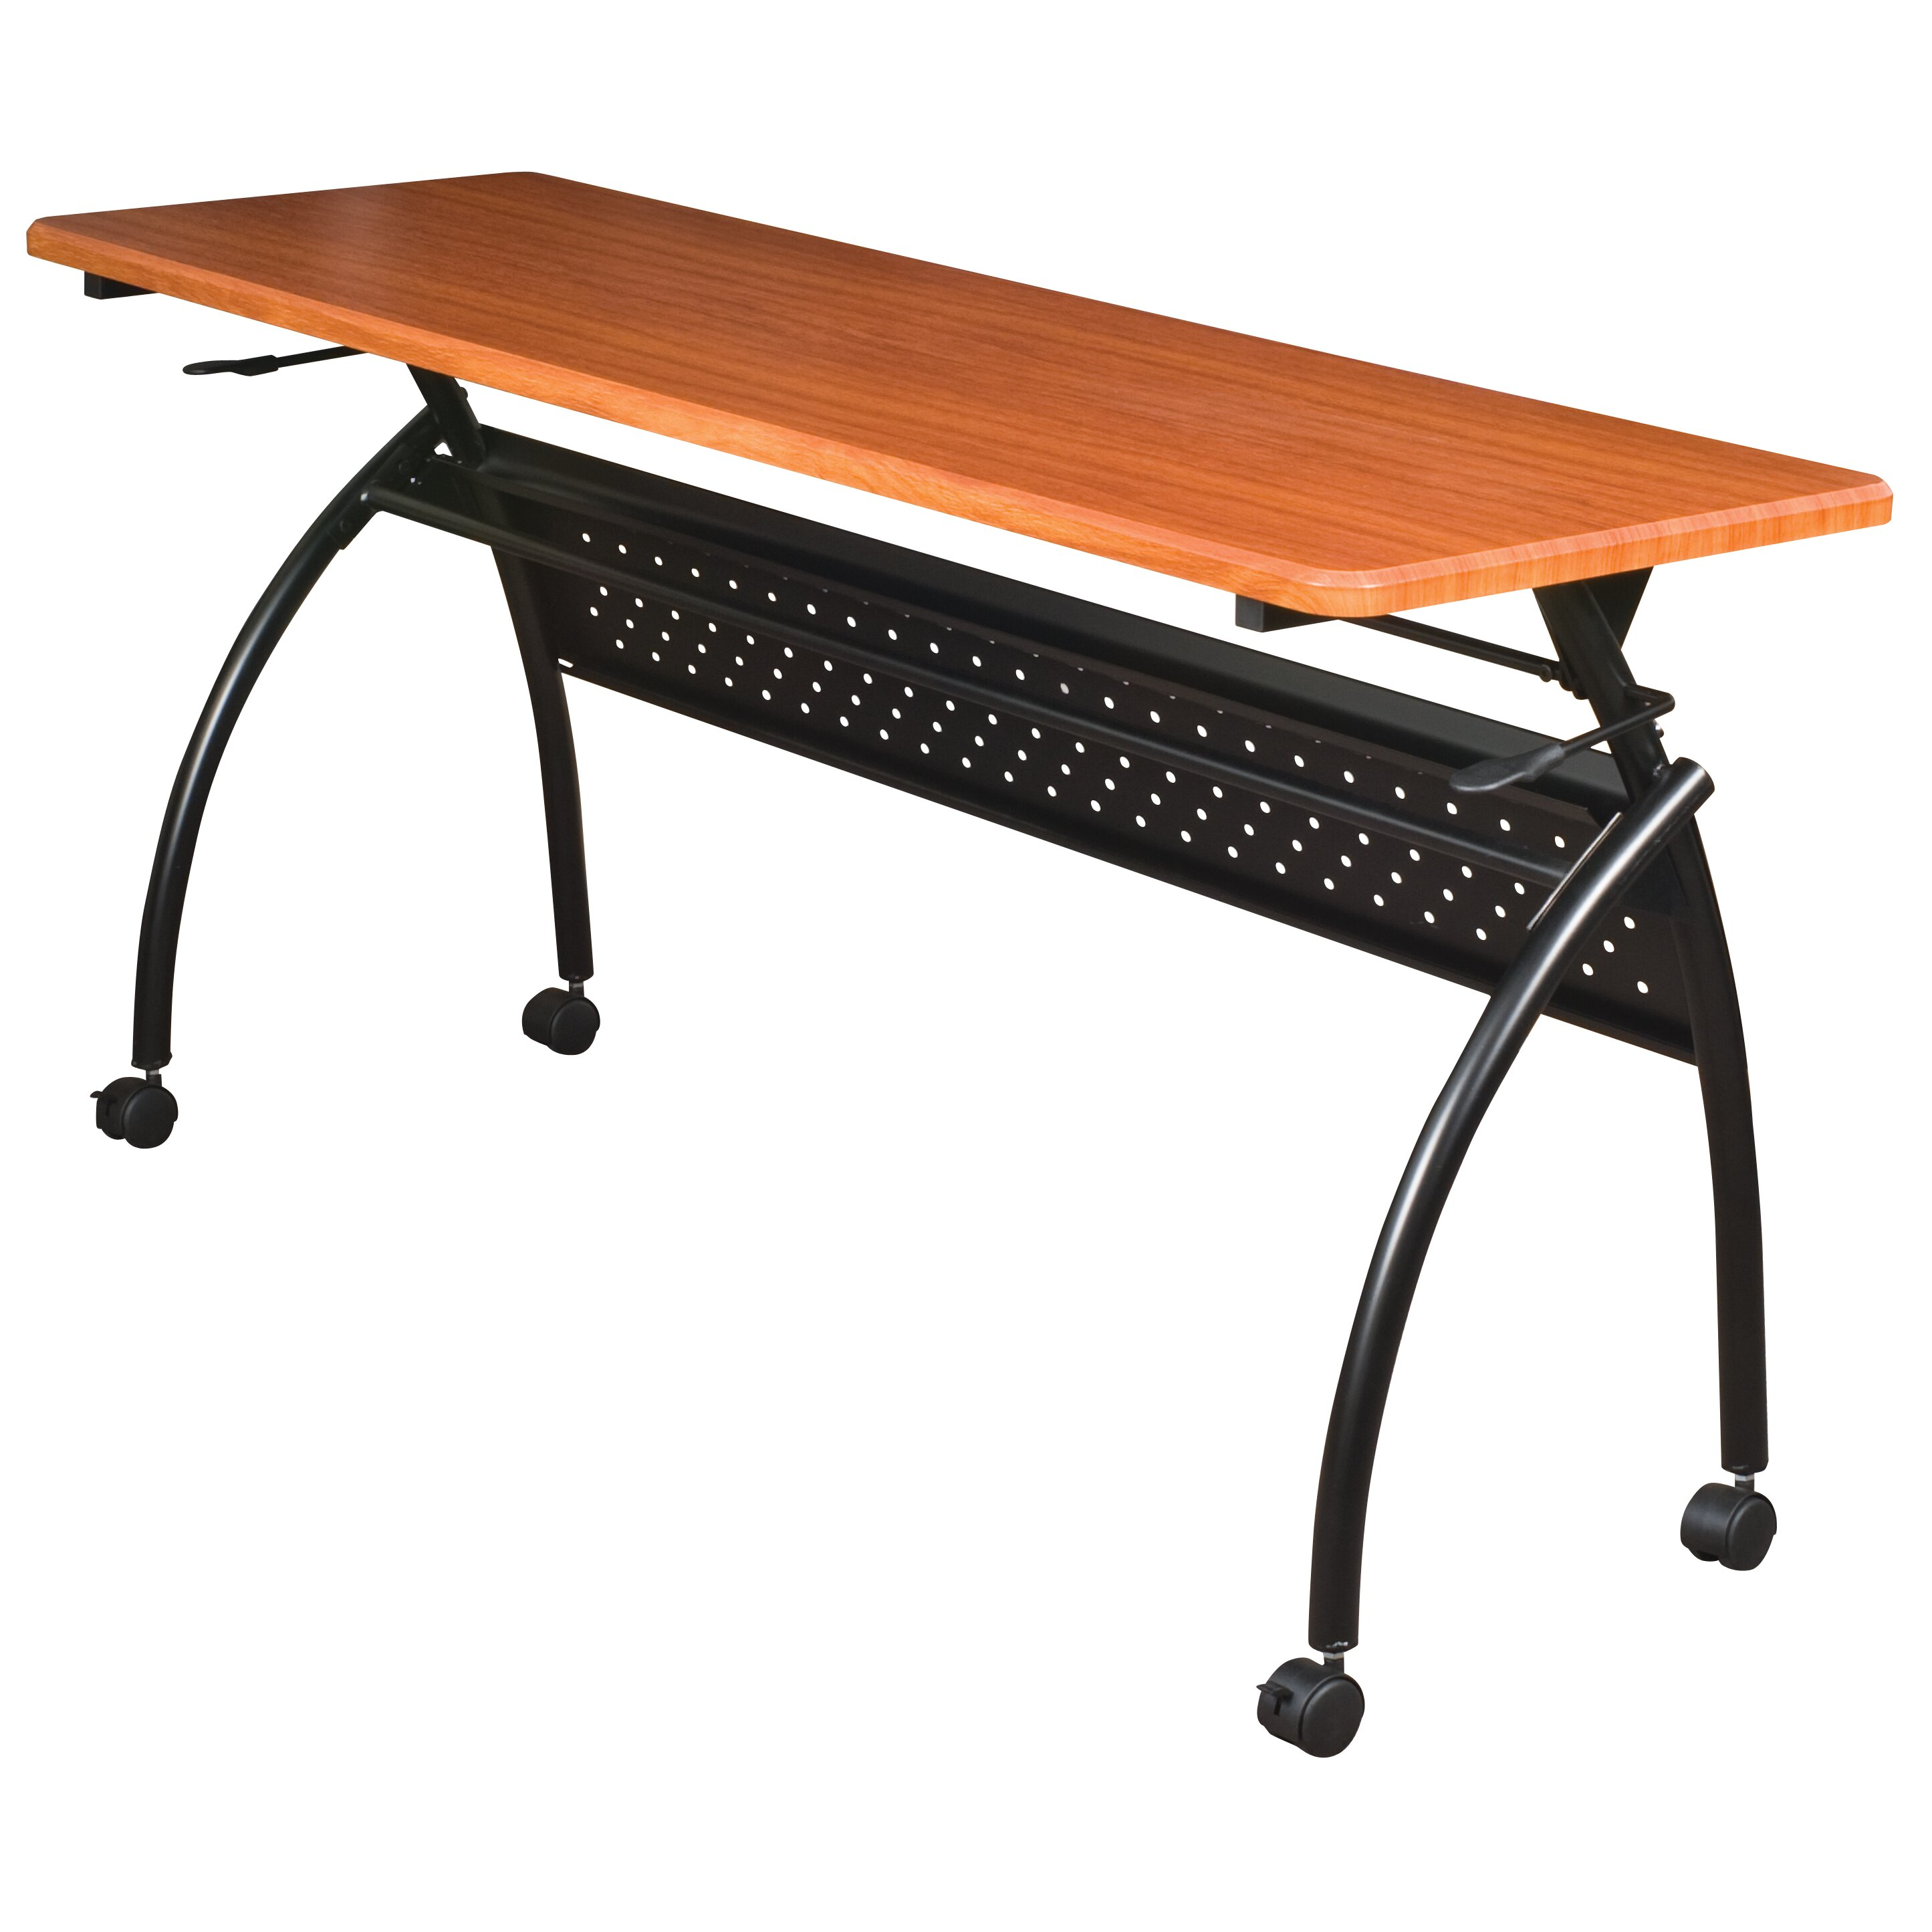 29 rectangular folding table wayfair for Chi square table df 99